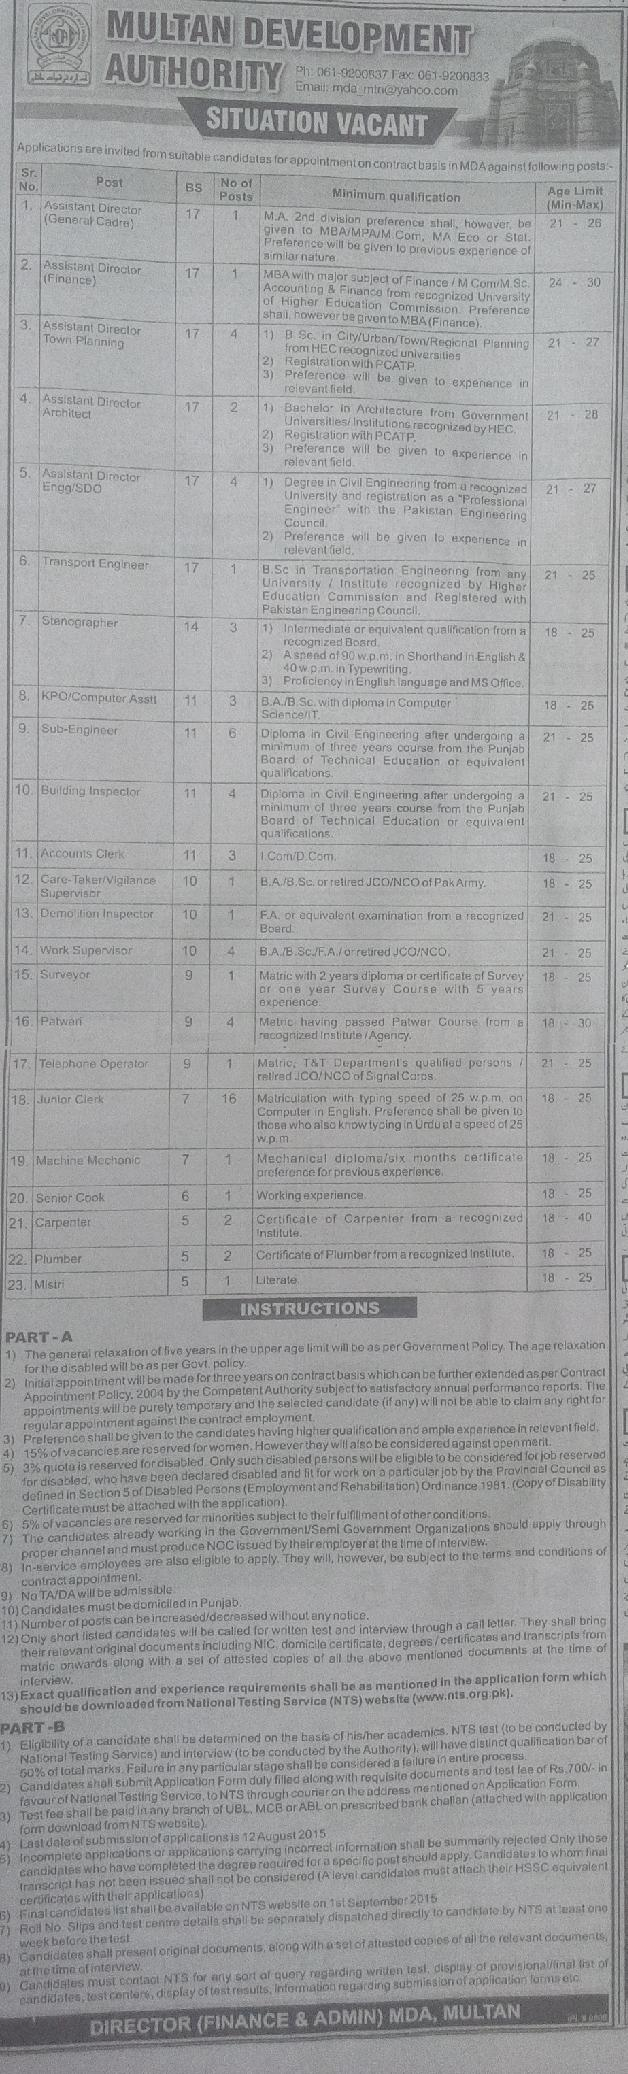 Jobs in MDA - Multan Development Authority